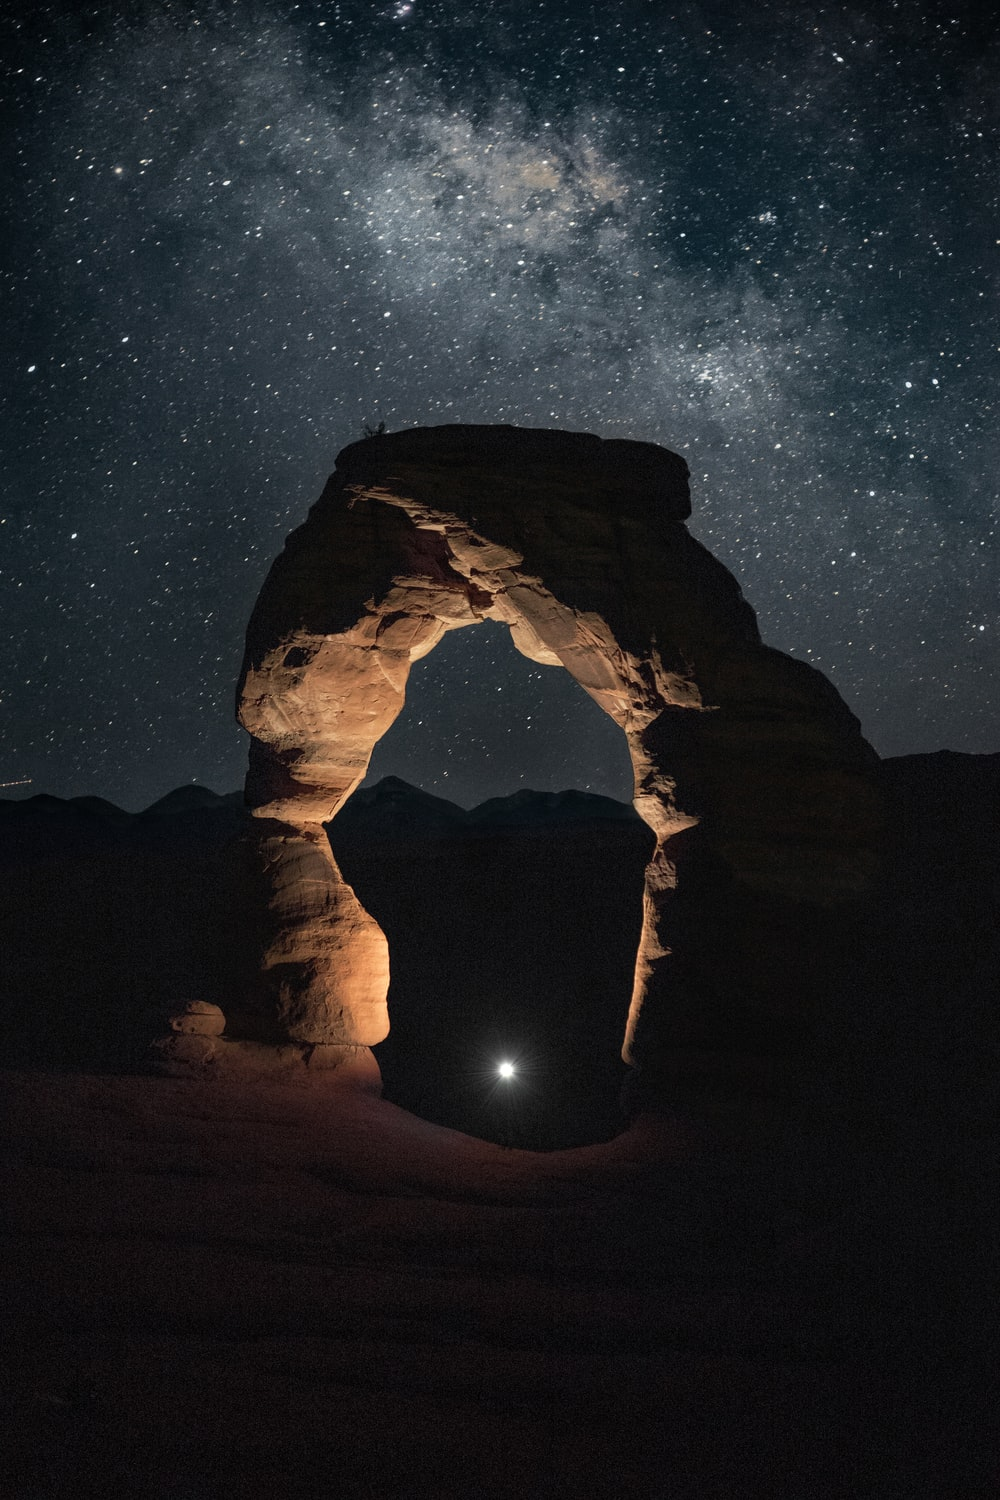 silhouette of man standing on rock formation during night time